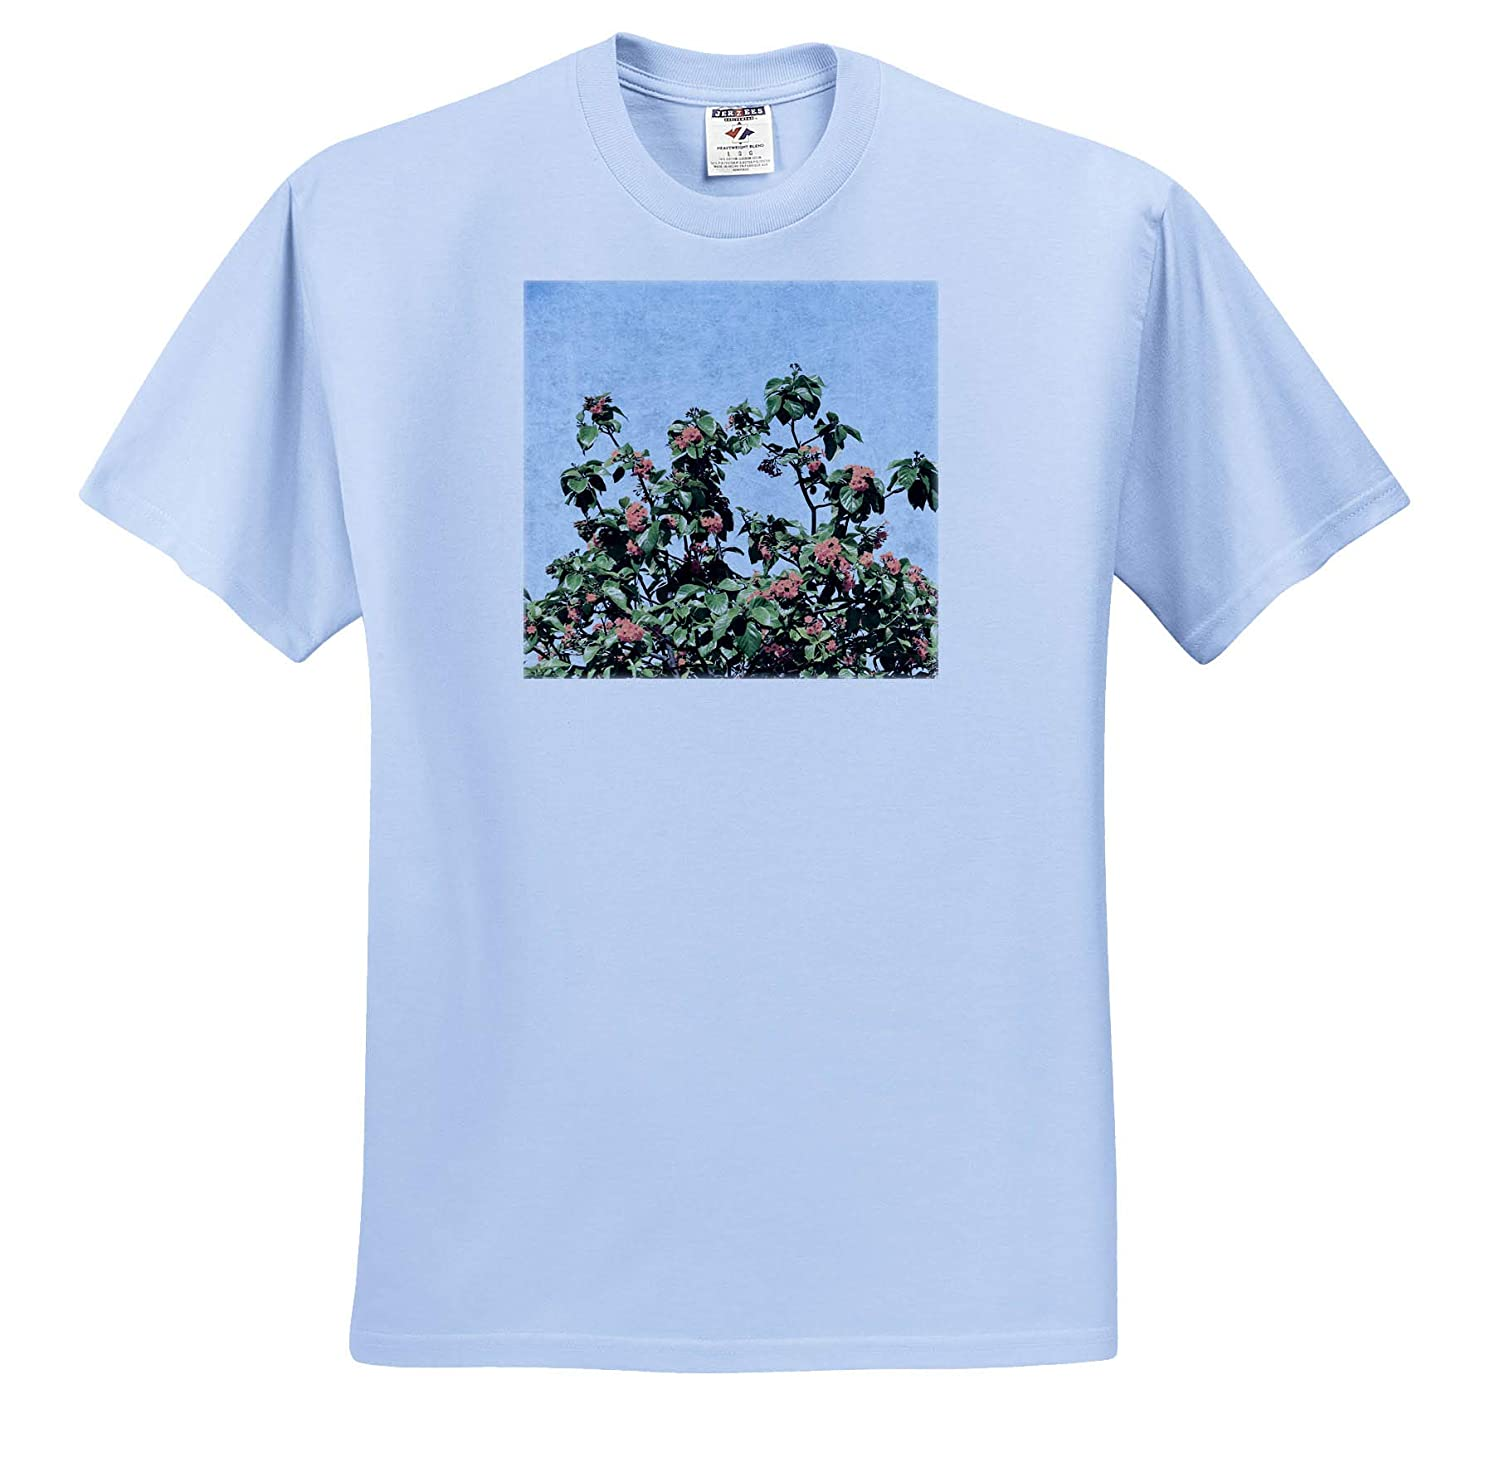 3dRose Susans Zoo Crew Floral Plant T-Shirts Faded Orange Green Flower Tree Sky Floral